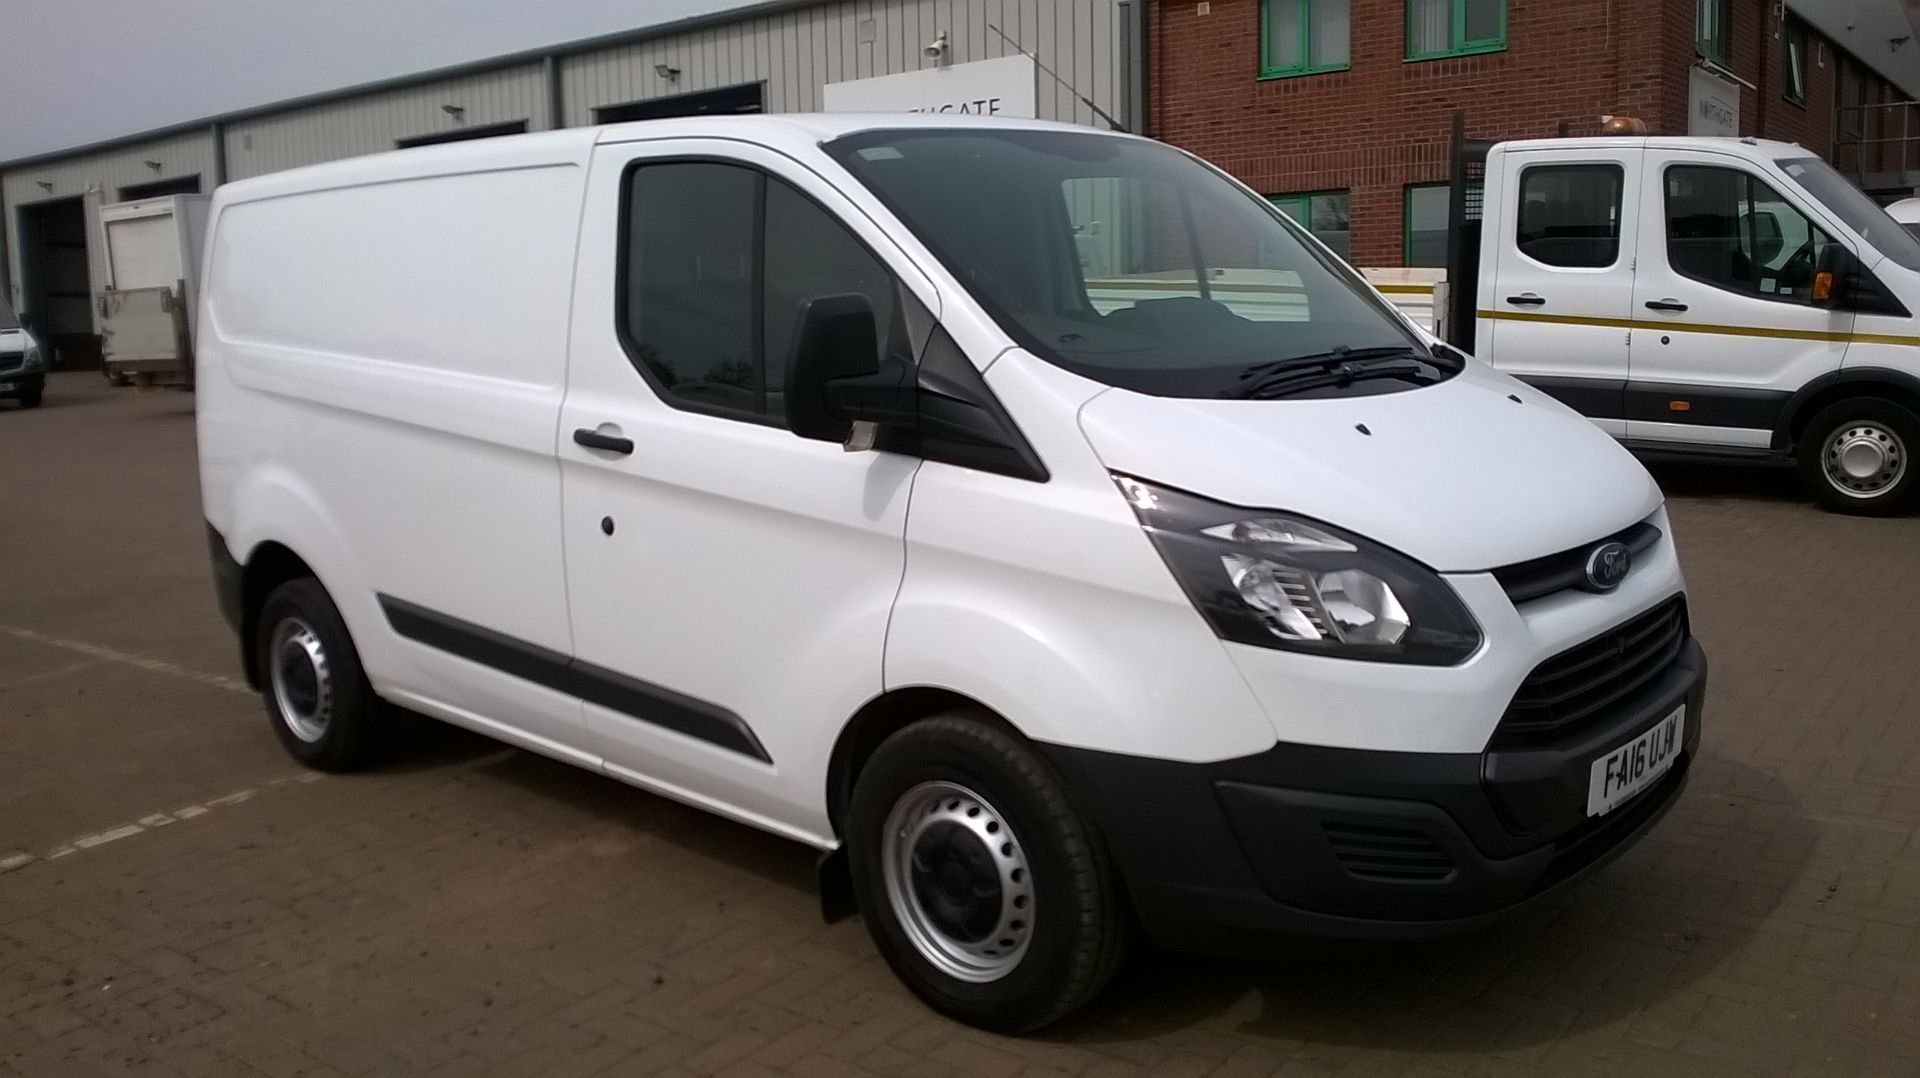 2016 Ford Transit Custom 290 L1 DIESEL FWD 2.2  TDCI 100PS LOW ROOF VAN EURO 5 (FA16UJW)